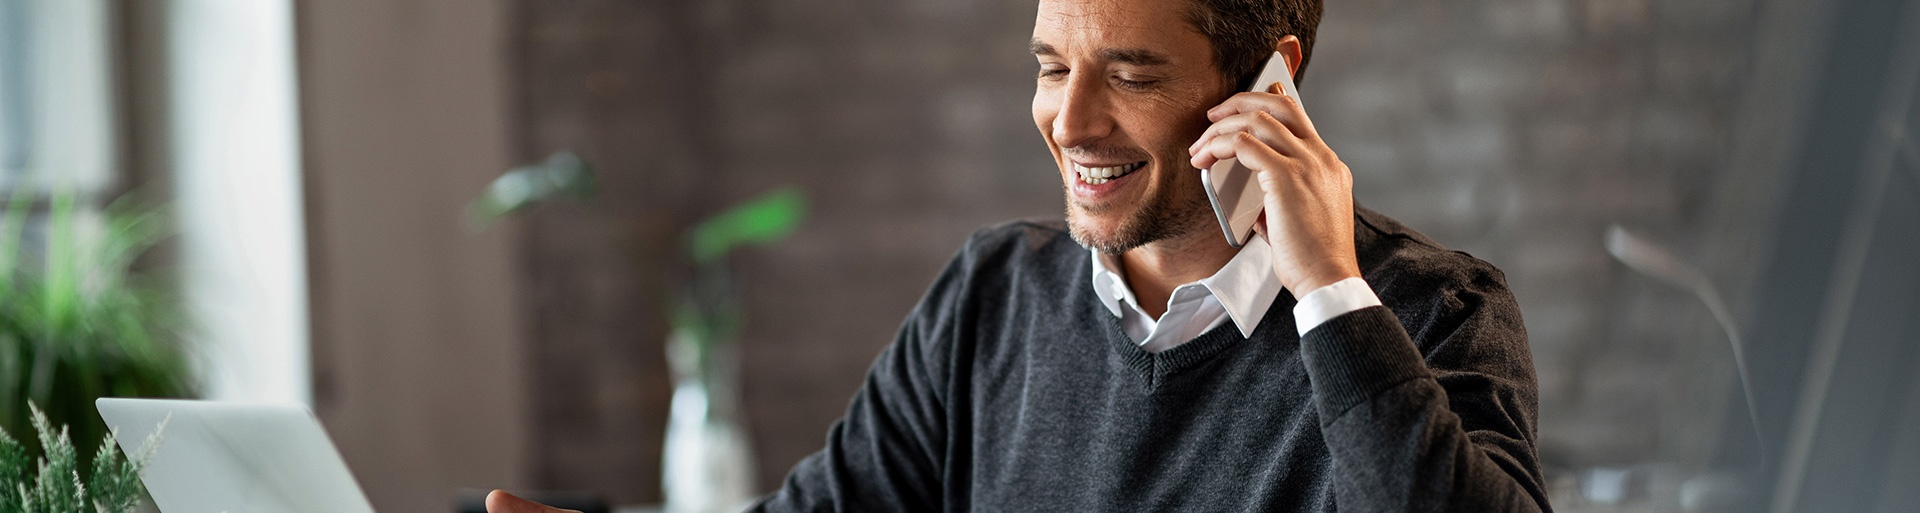 man talking on the phone at a desk smiling